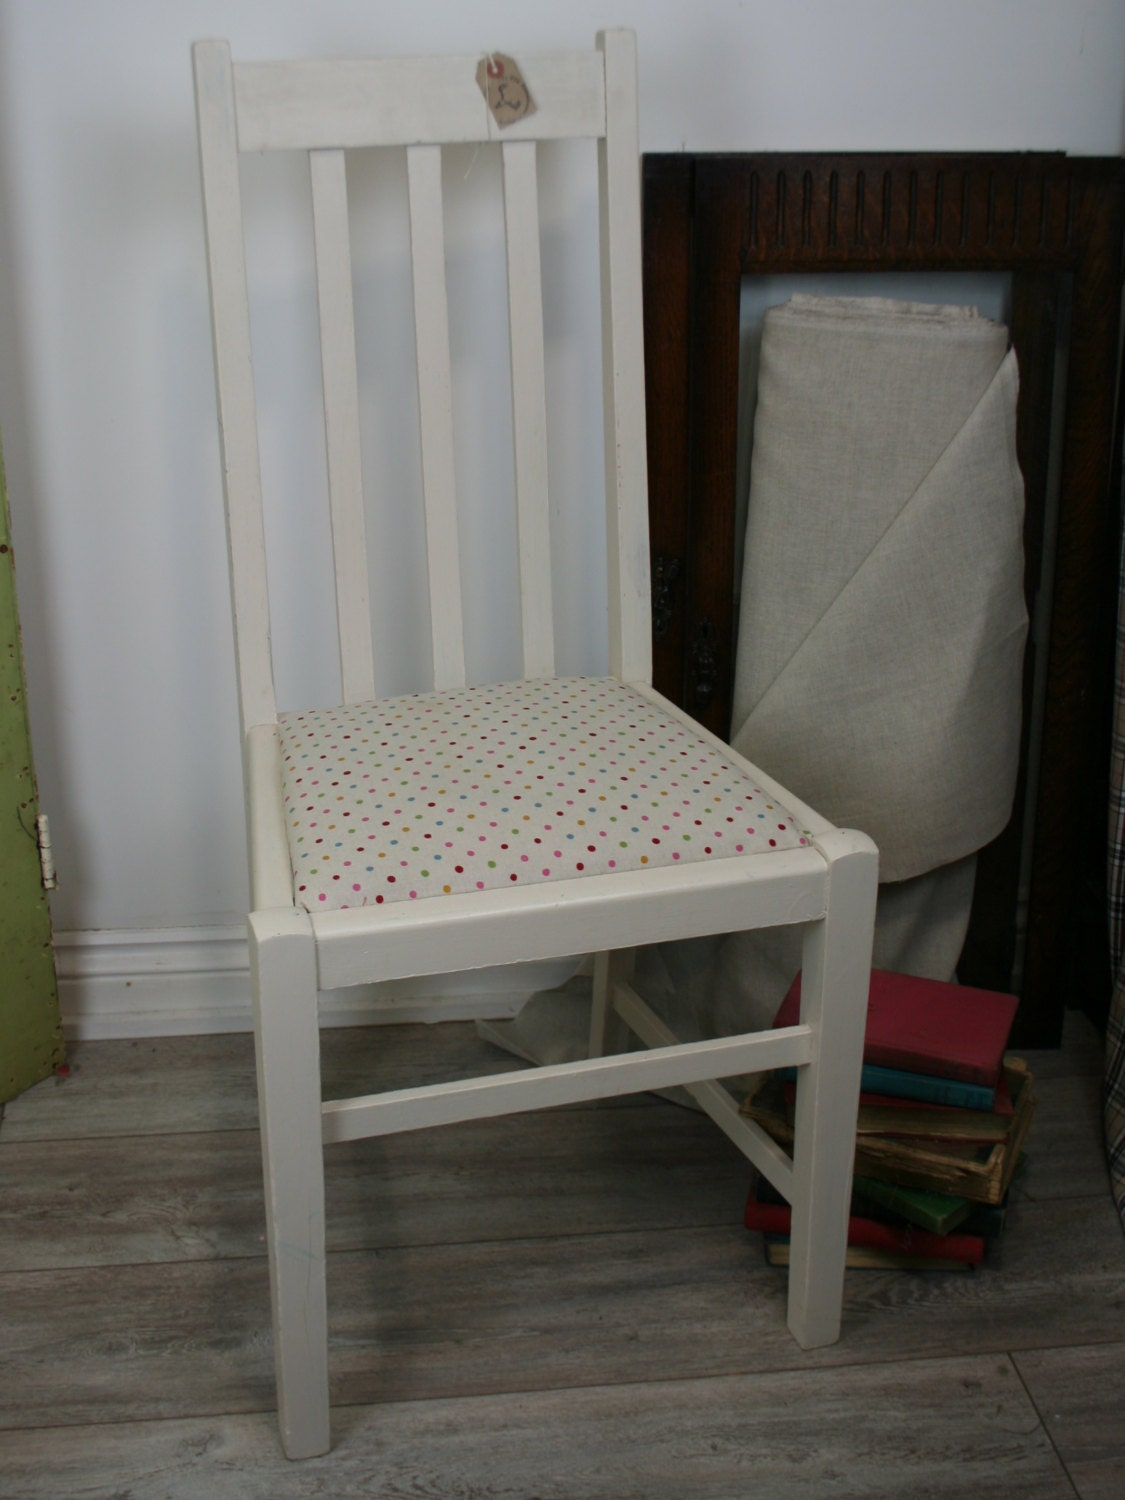 seat chair shabby chic dining or bedroom cute chair haute juice